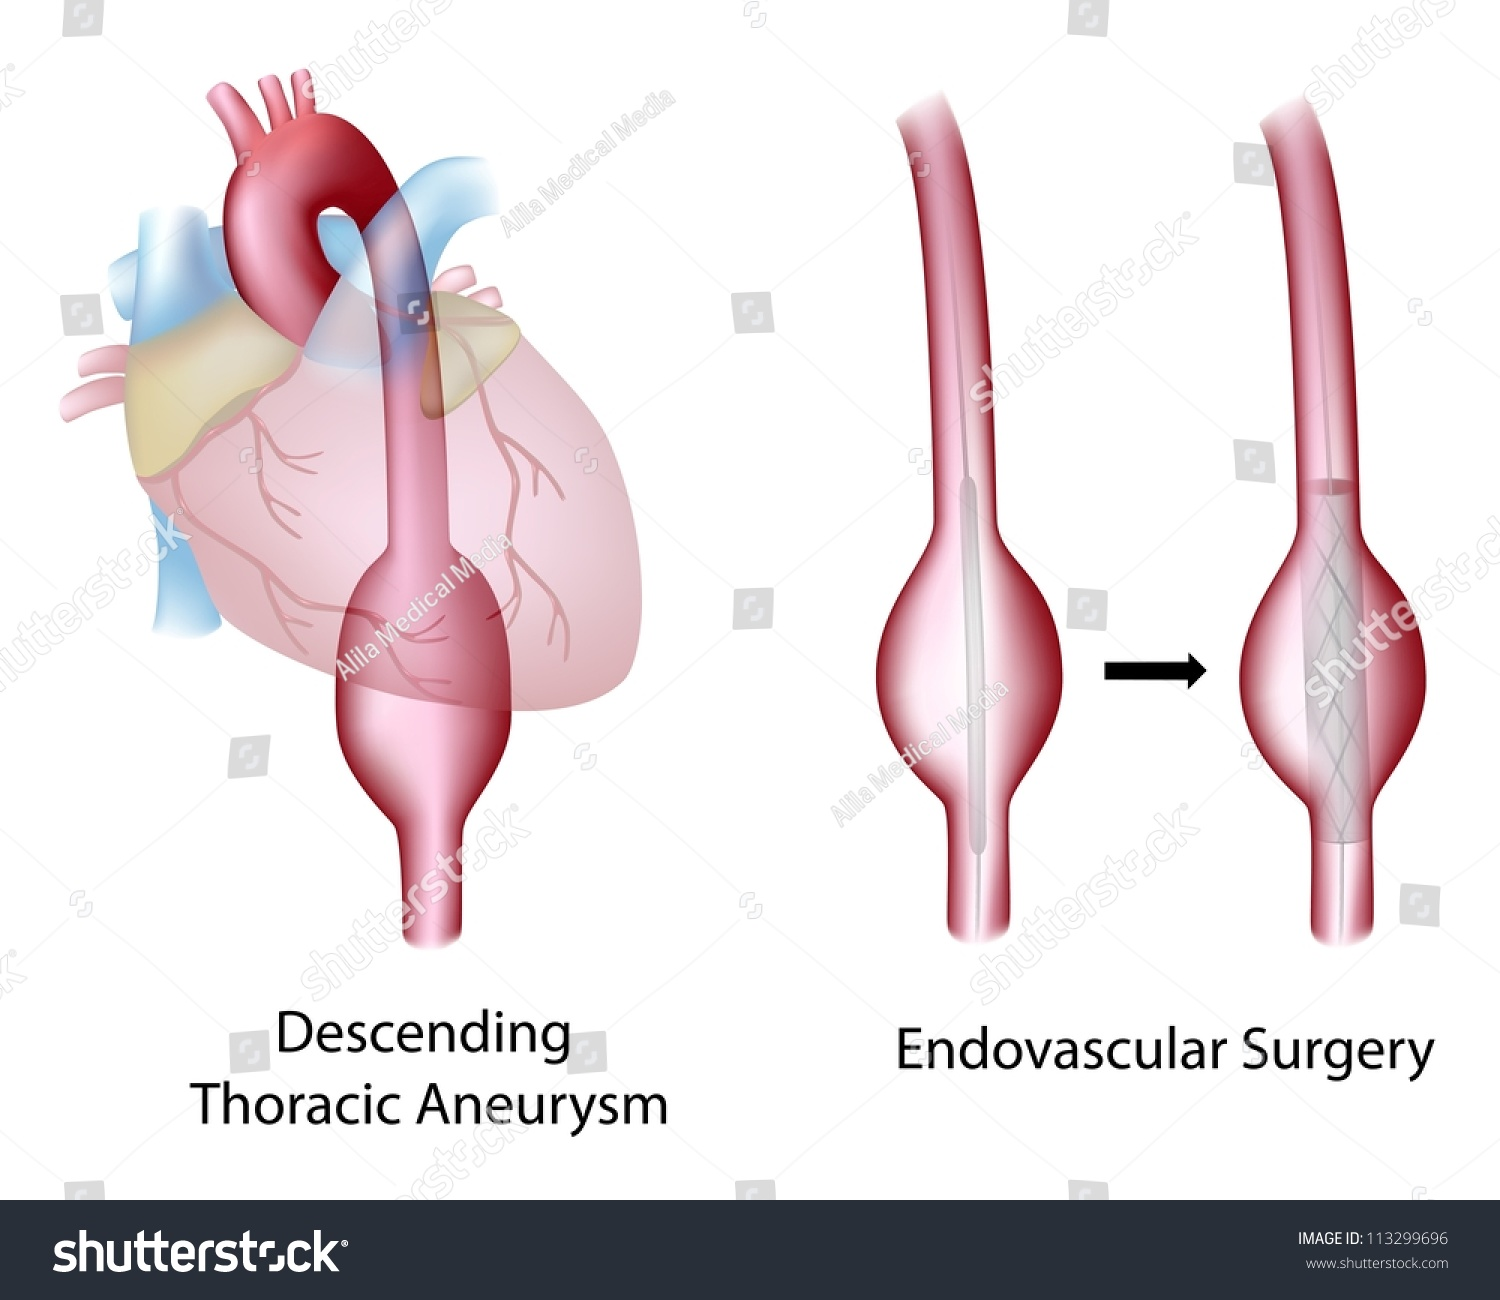 Thoracic Descending Aortic Aneurysm And Endovascular